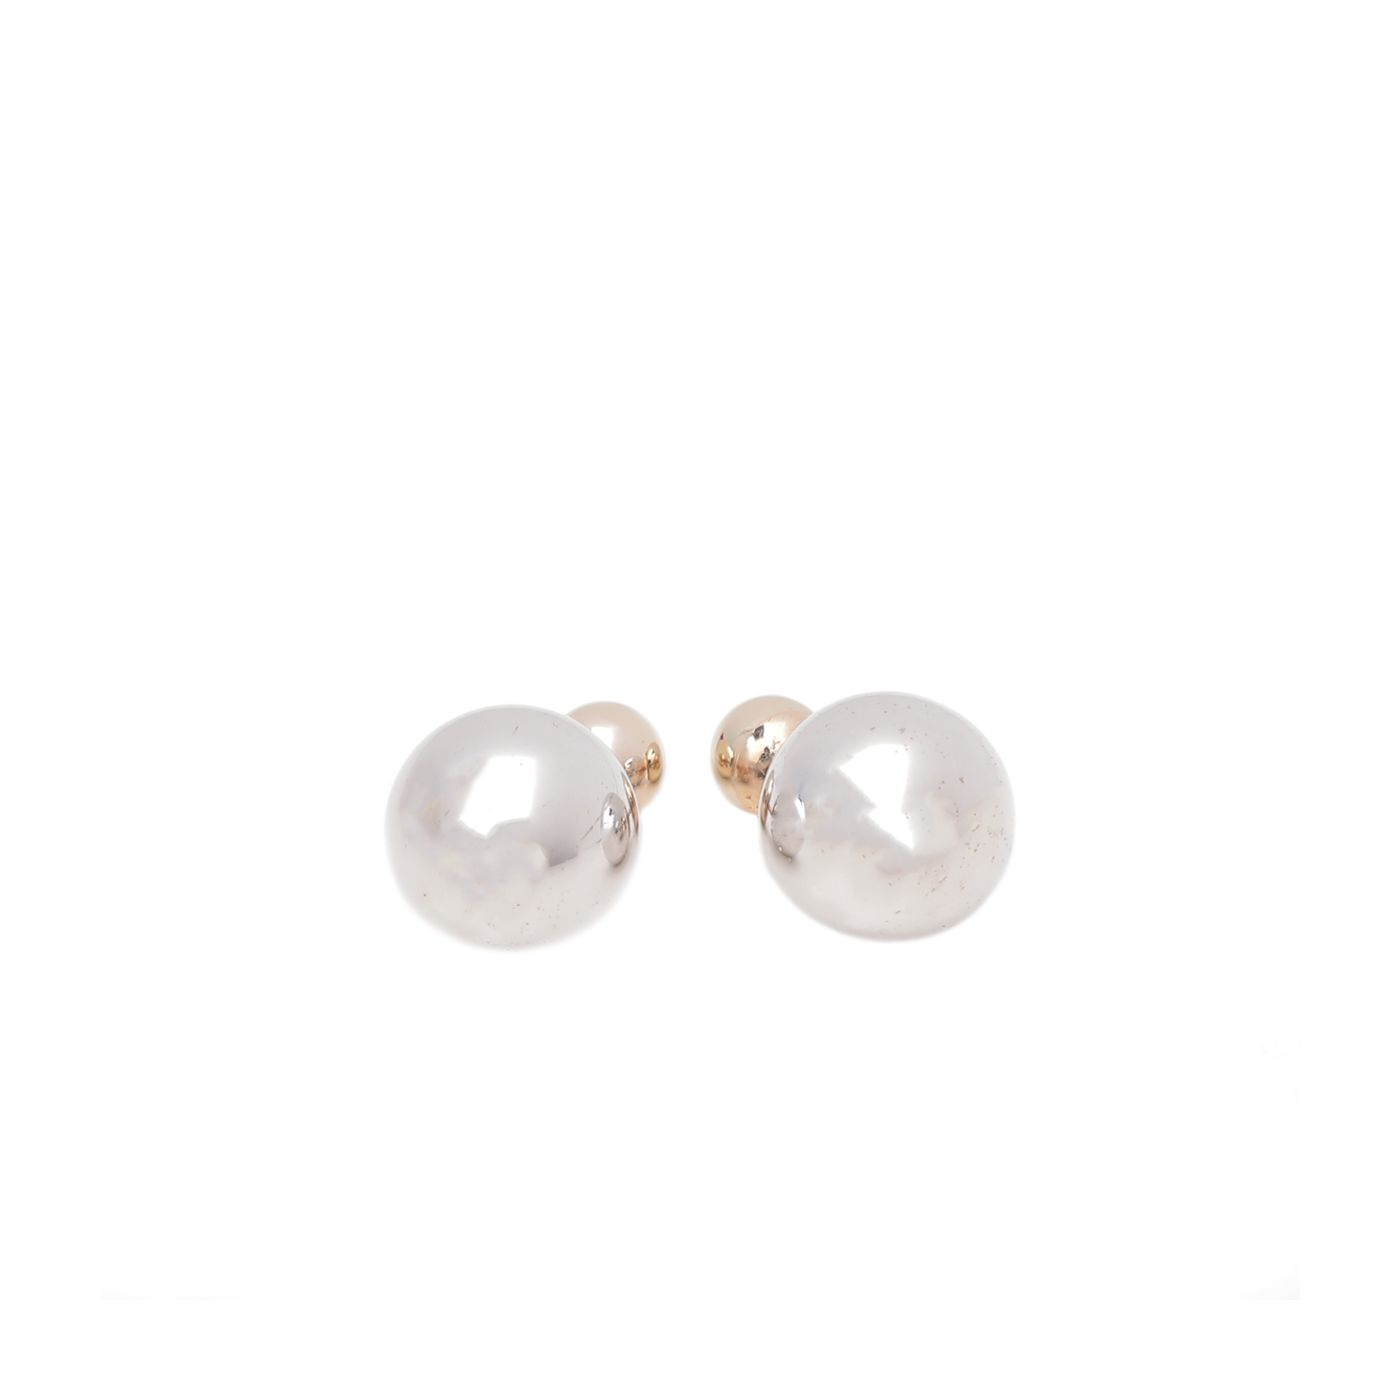 Christian Dior Silver Gold Mise En Dior Tribales Earrings